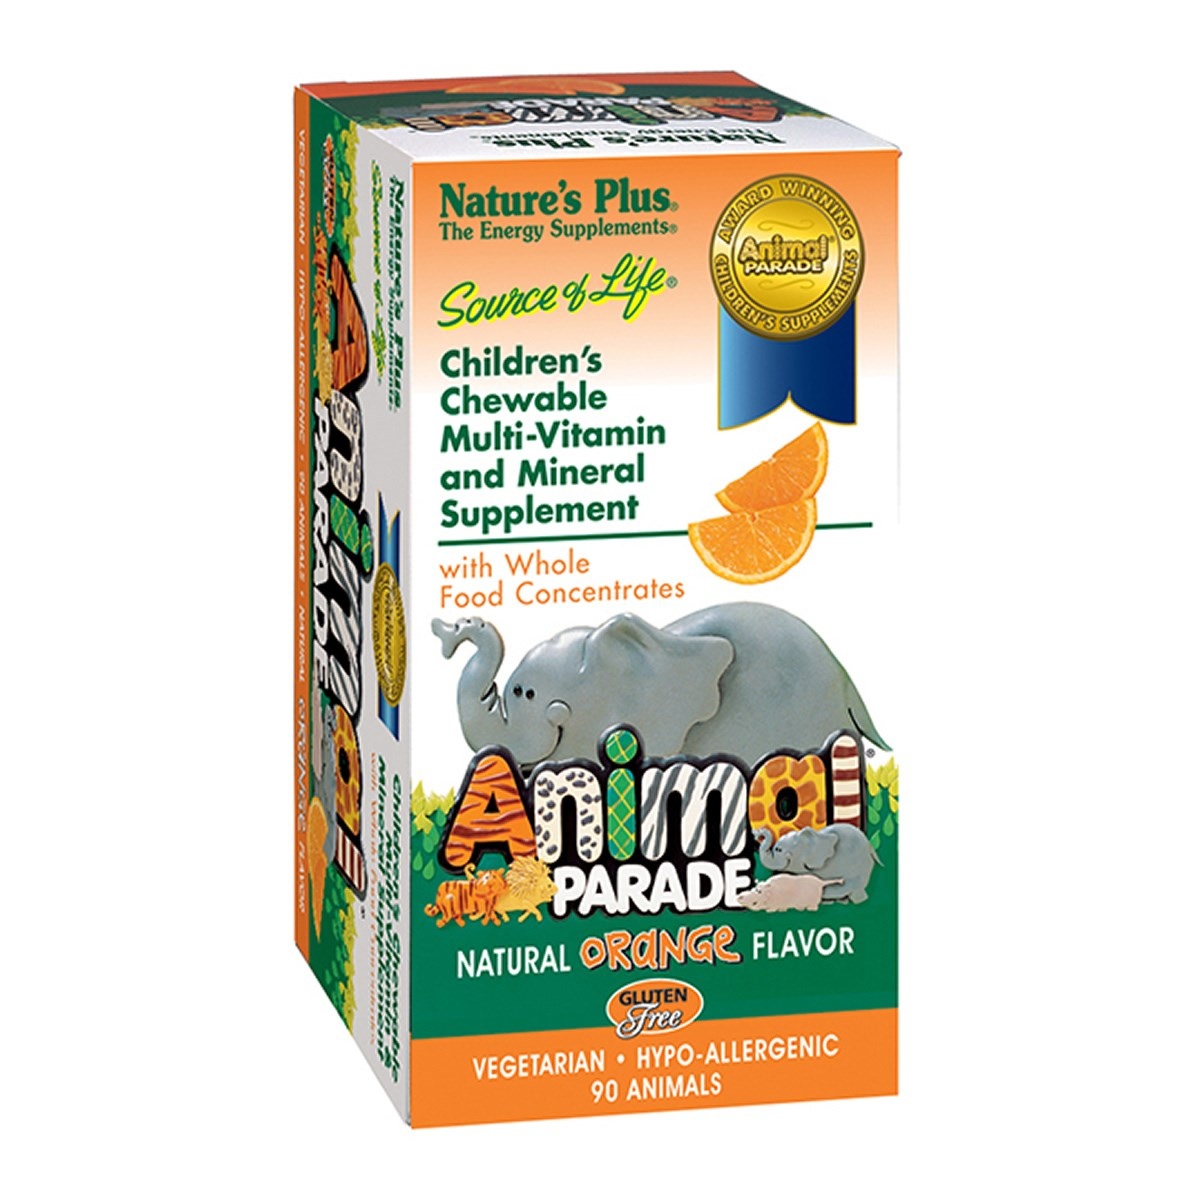 Natures Plus Source of Life Animal Parade - Orange Flavor Chewables